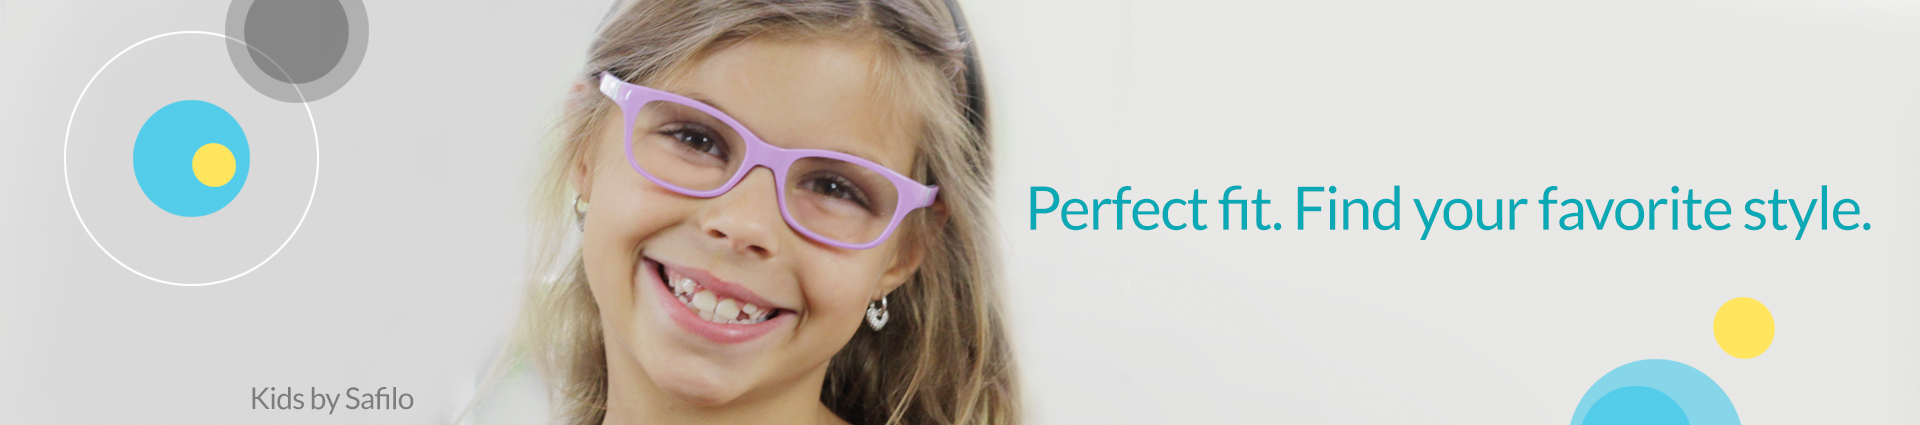 Kids By Safilo